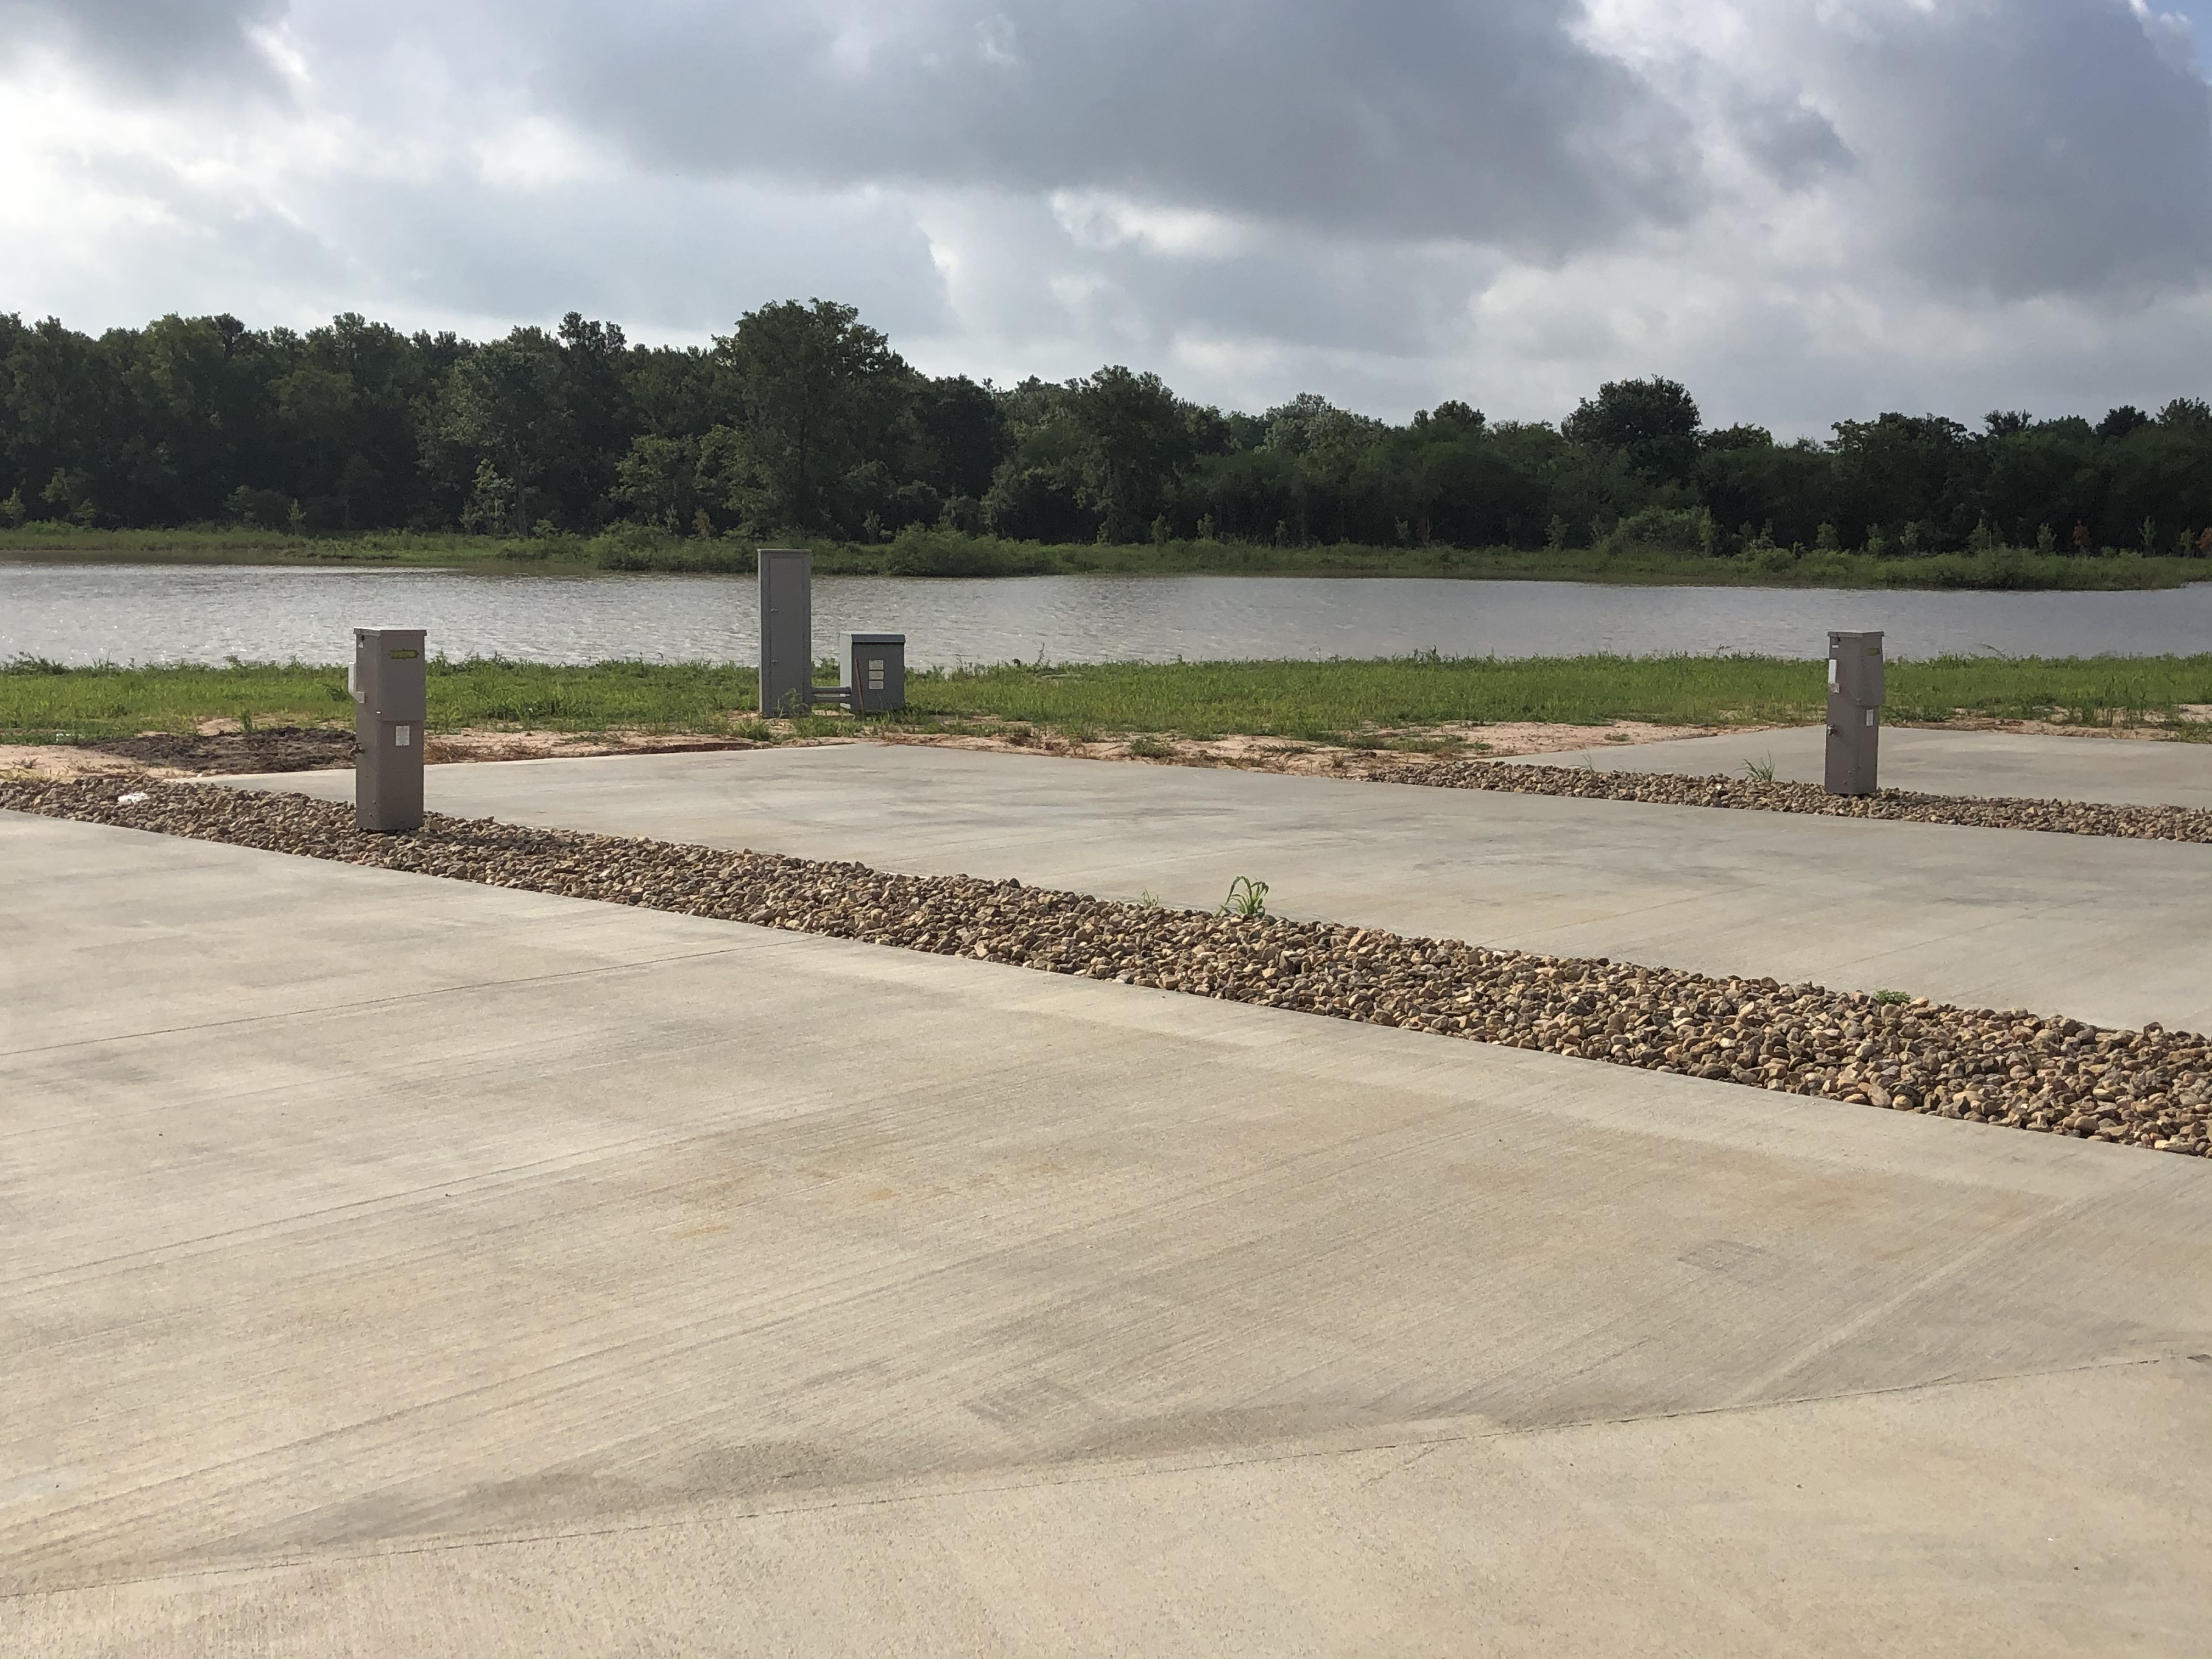 RV camping spaces overlooking the pond in Sealy, TX